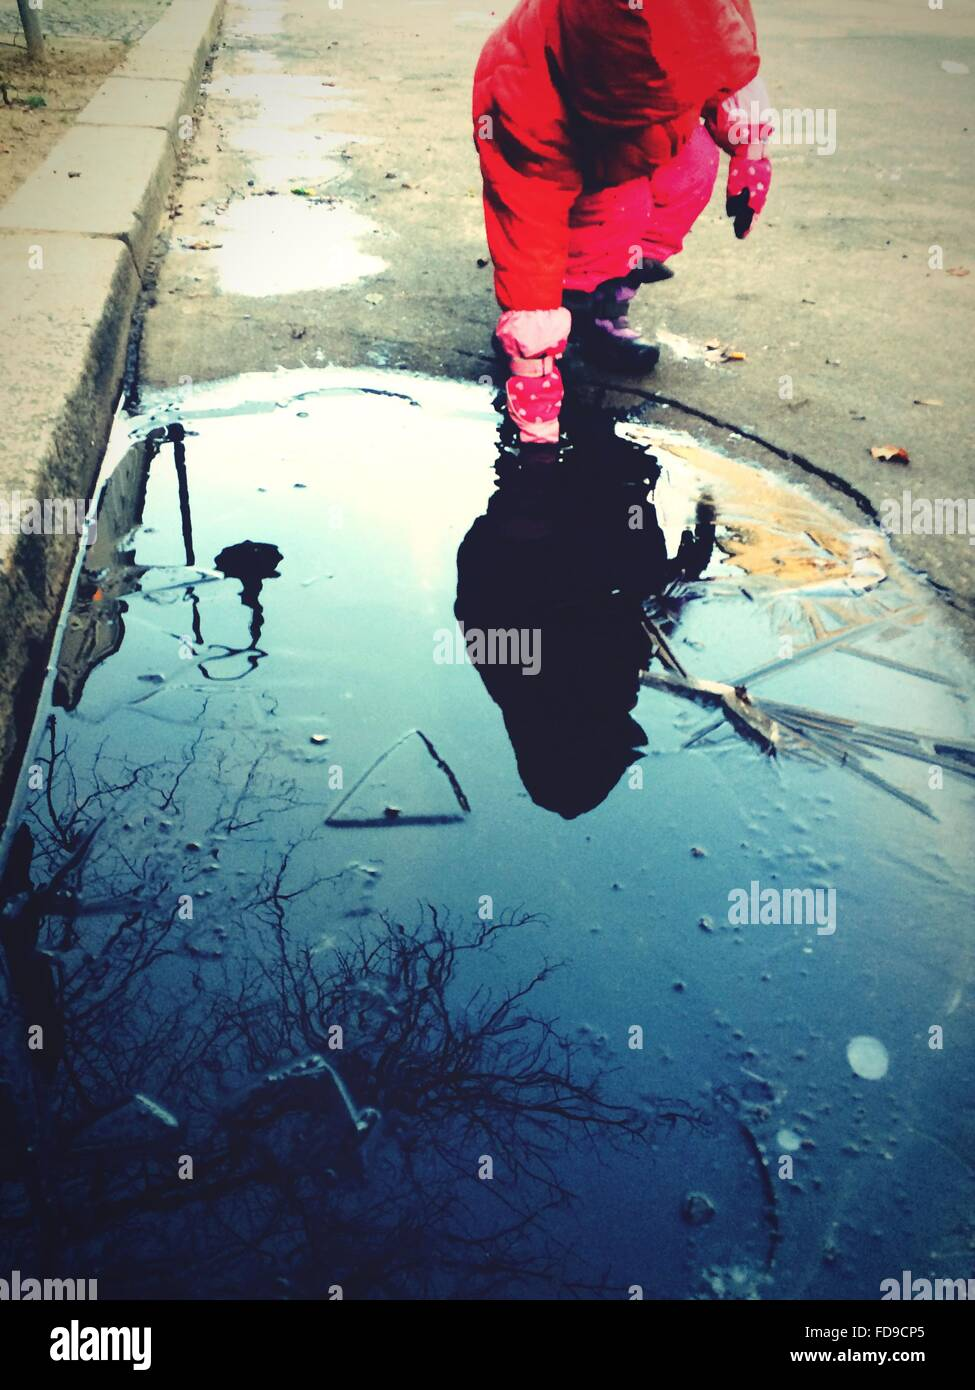 Girl Putting Hand Into Puddle - Stock Image